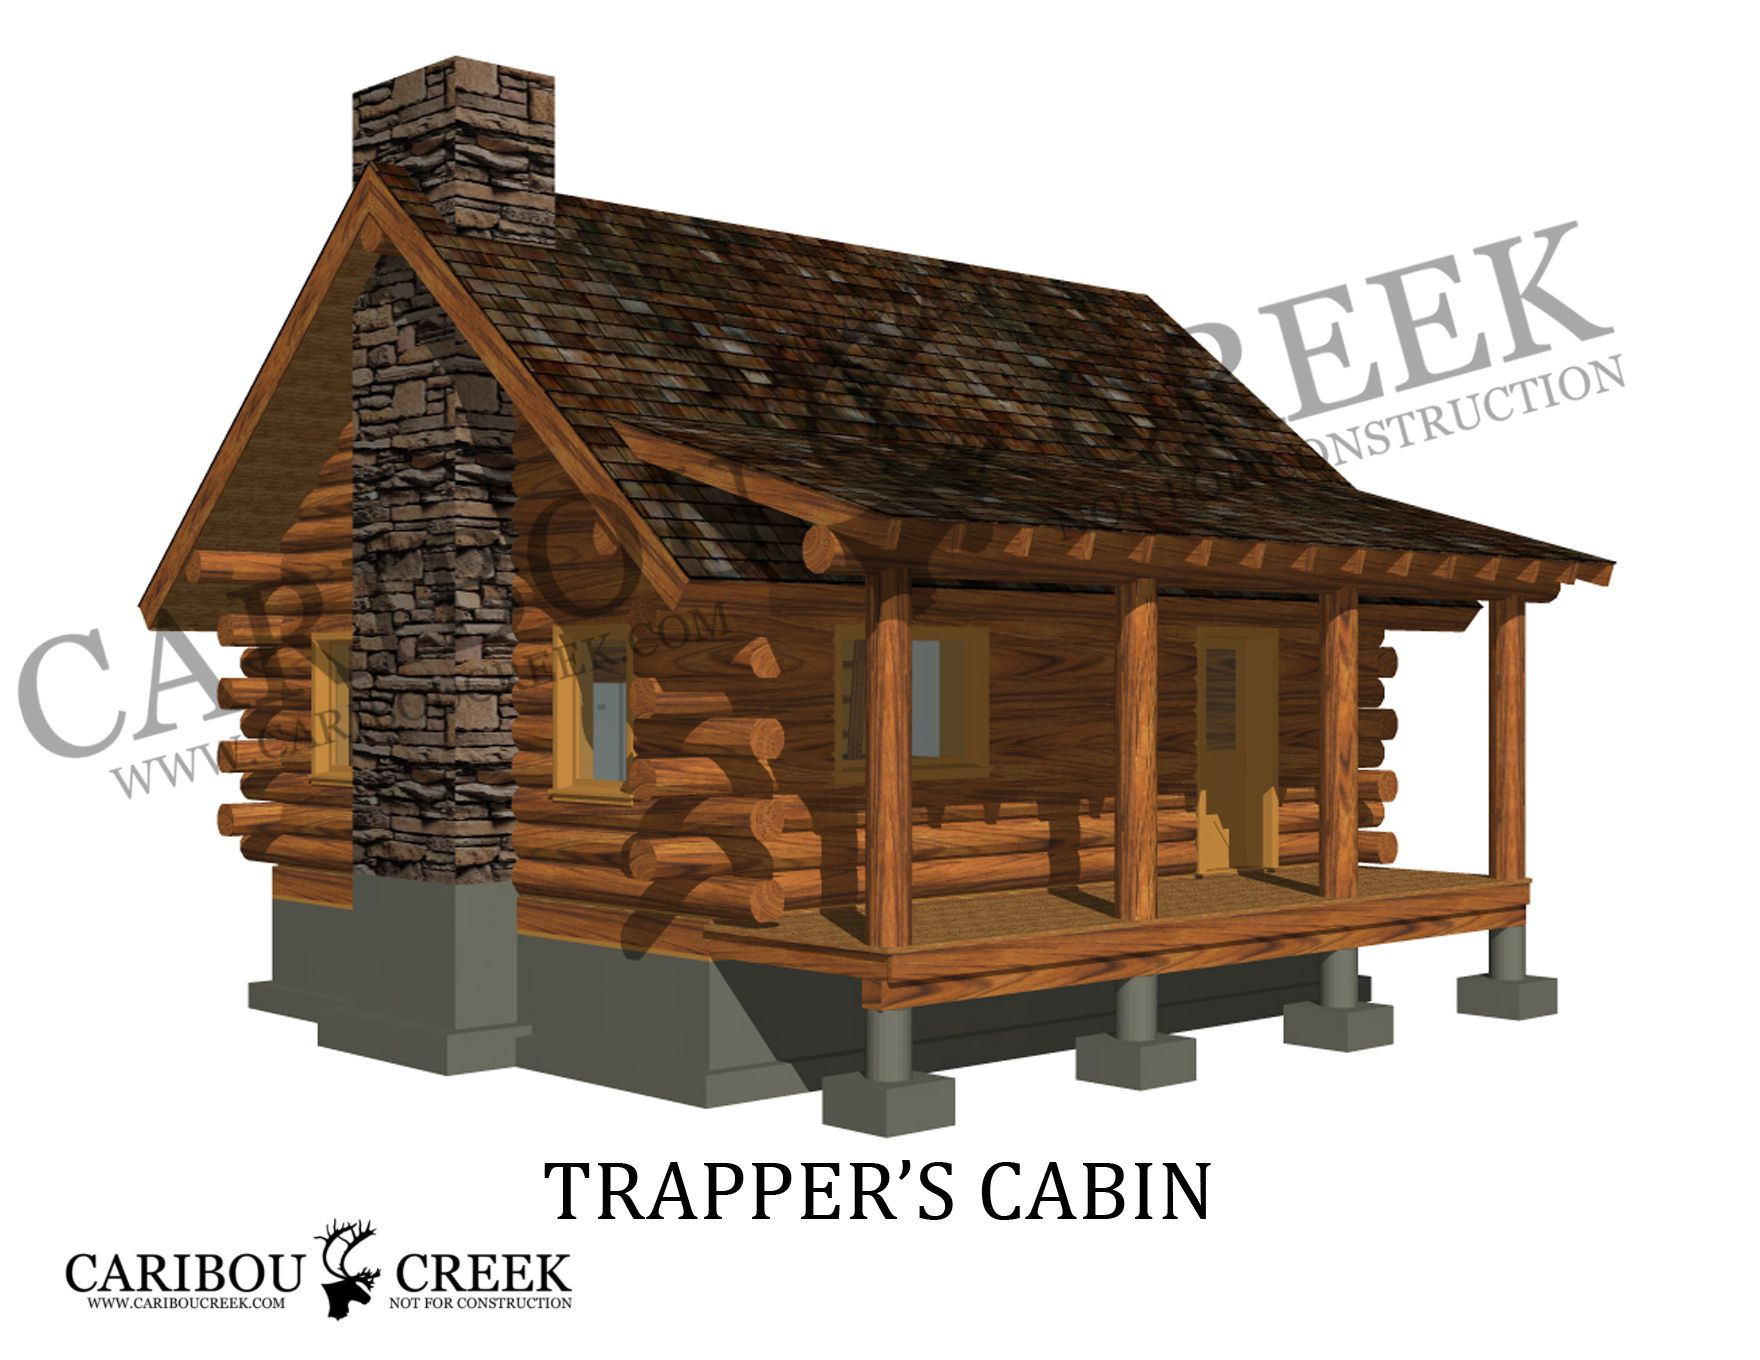 Tiny Log Home Designs: Trappers Cabin - Google Search